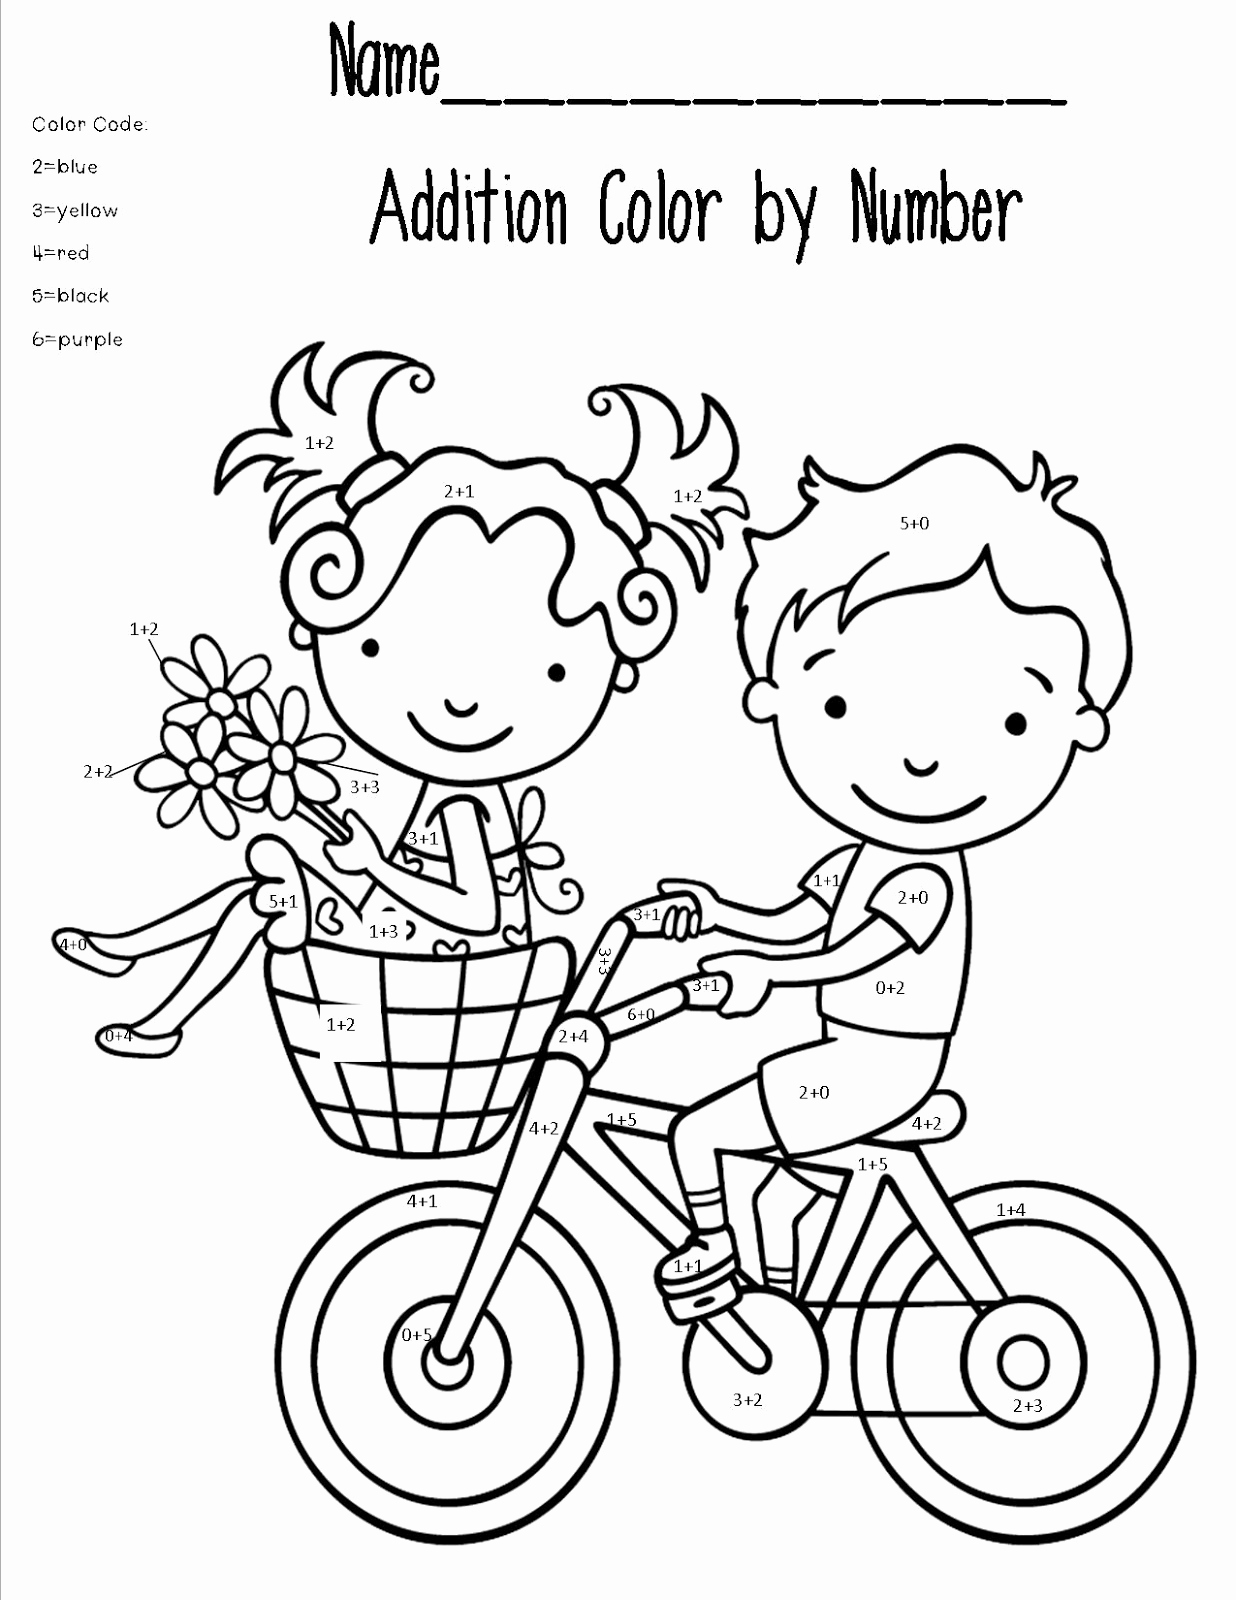 Addition Coloring Worksheets for Kindergarten Awesome Free Printable Math Coloring Pages for Kids Best